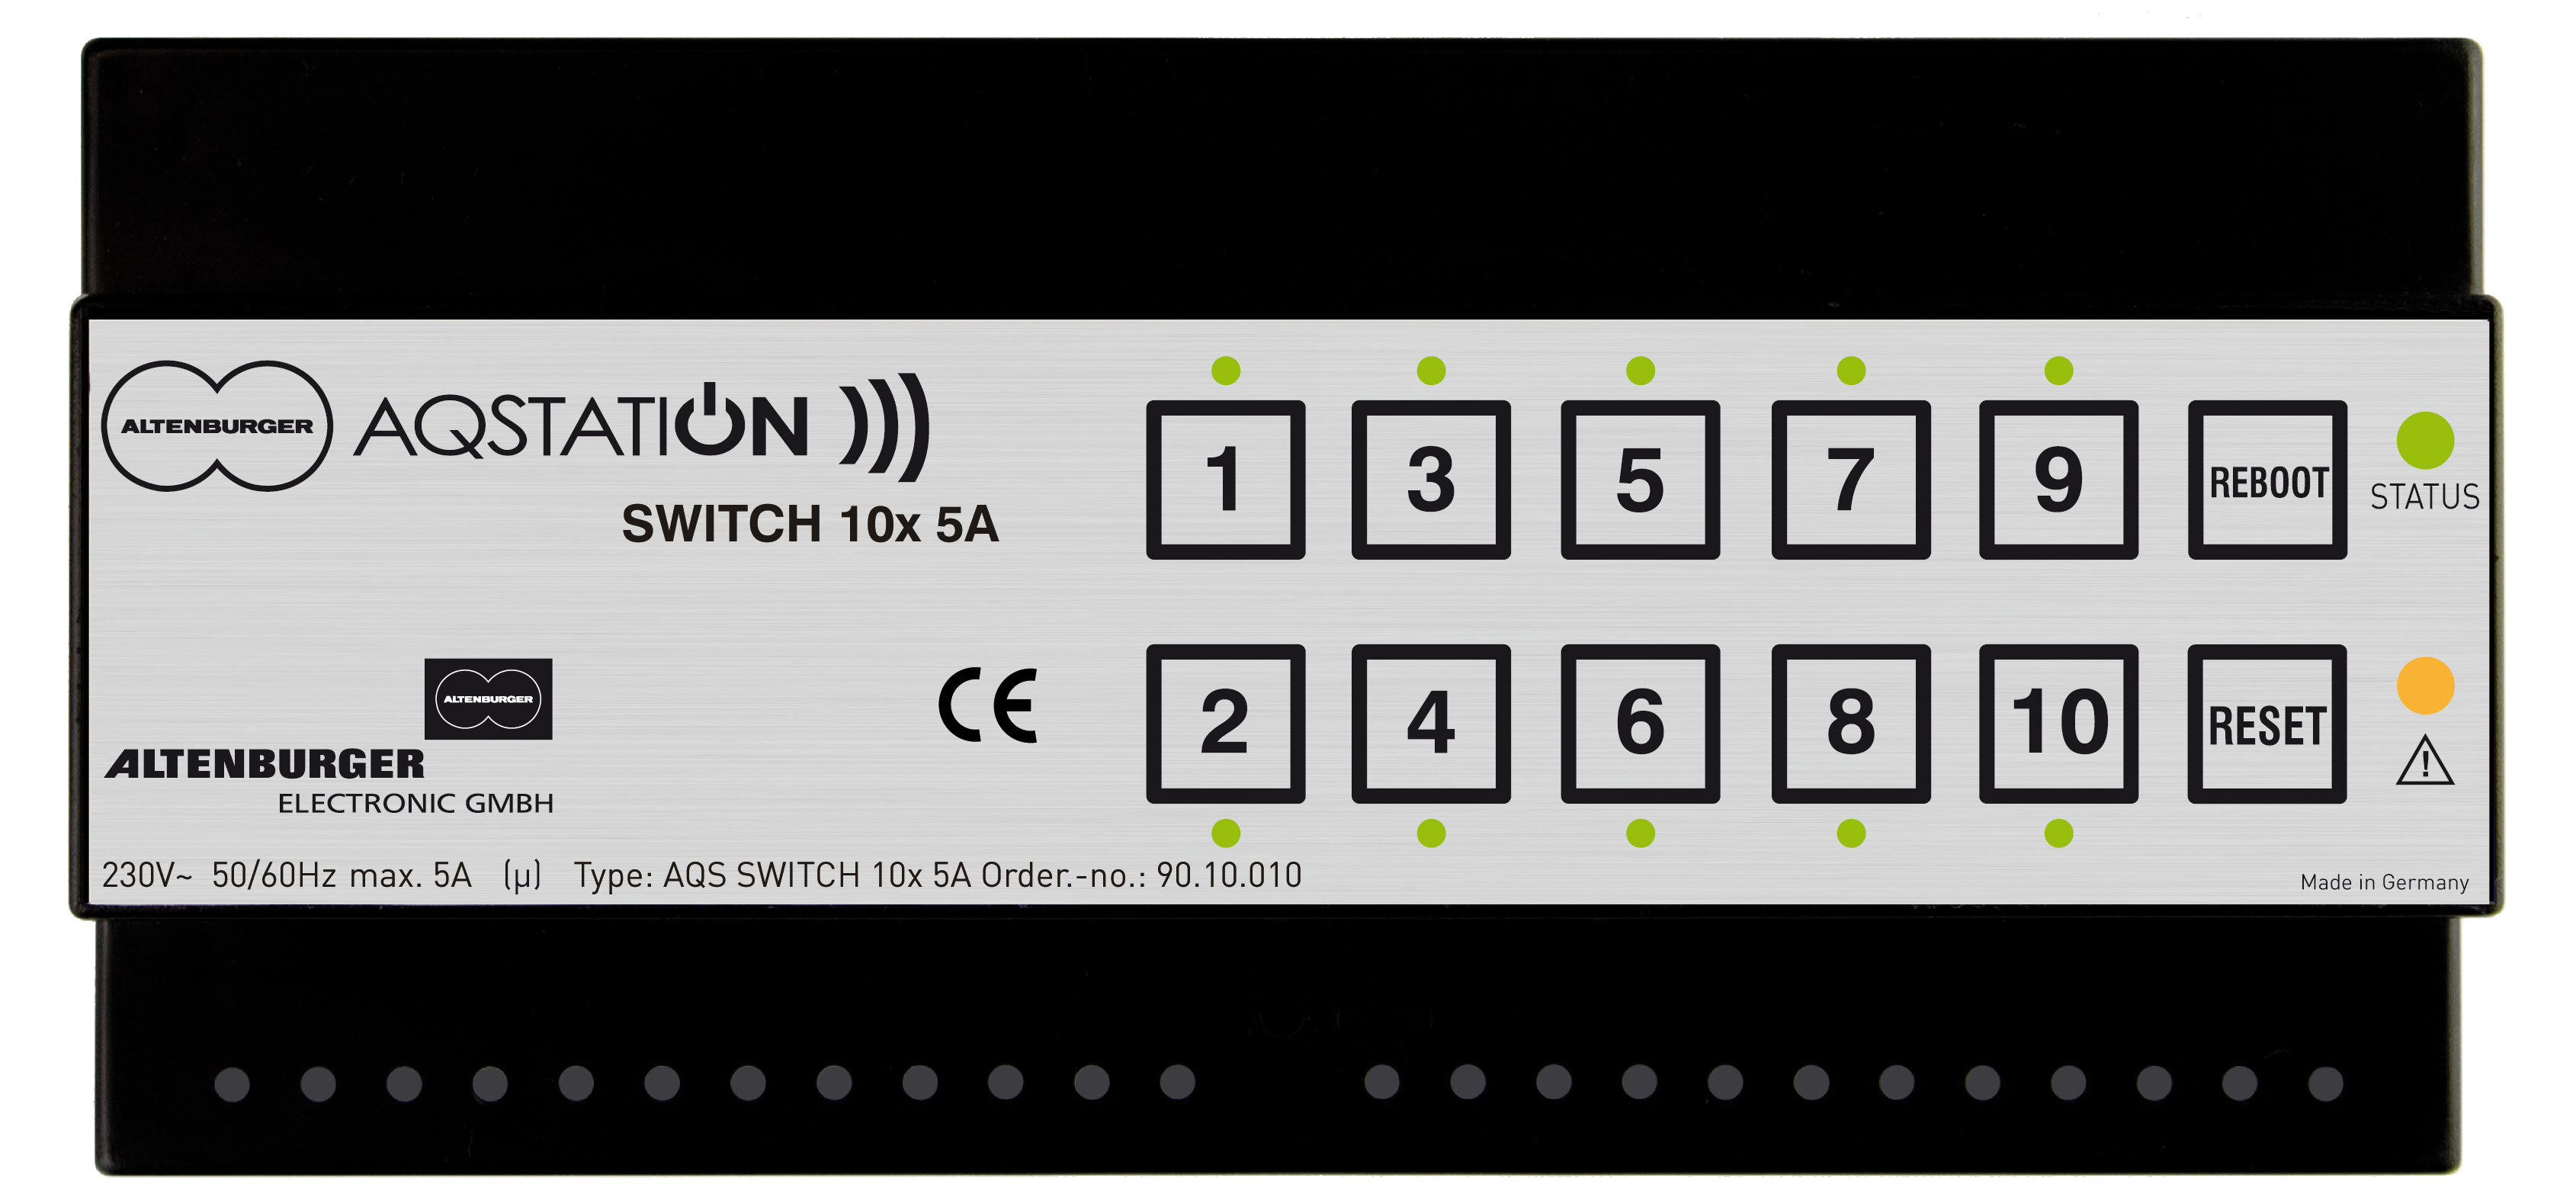 90 10 010 AQS Switch 10x5A